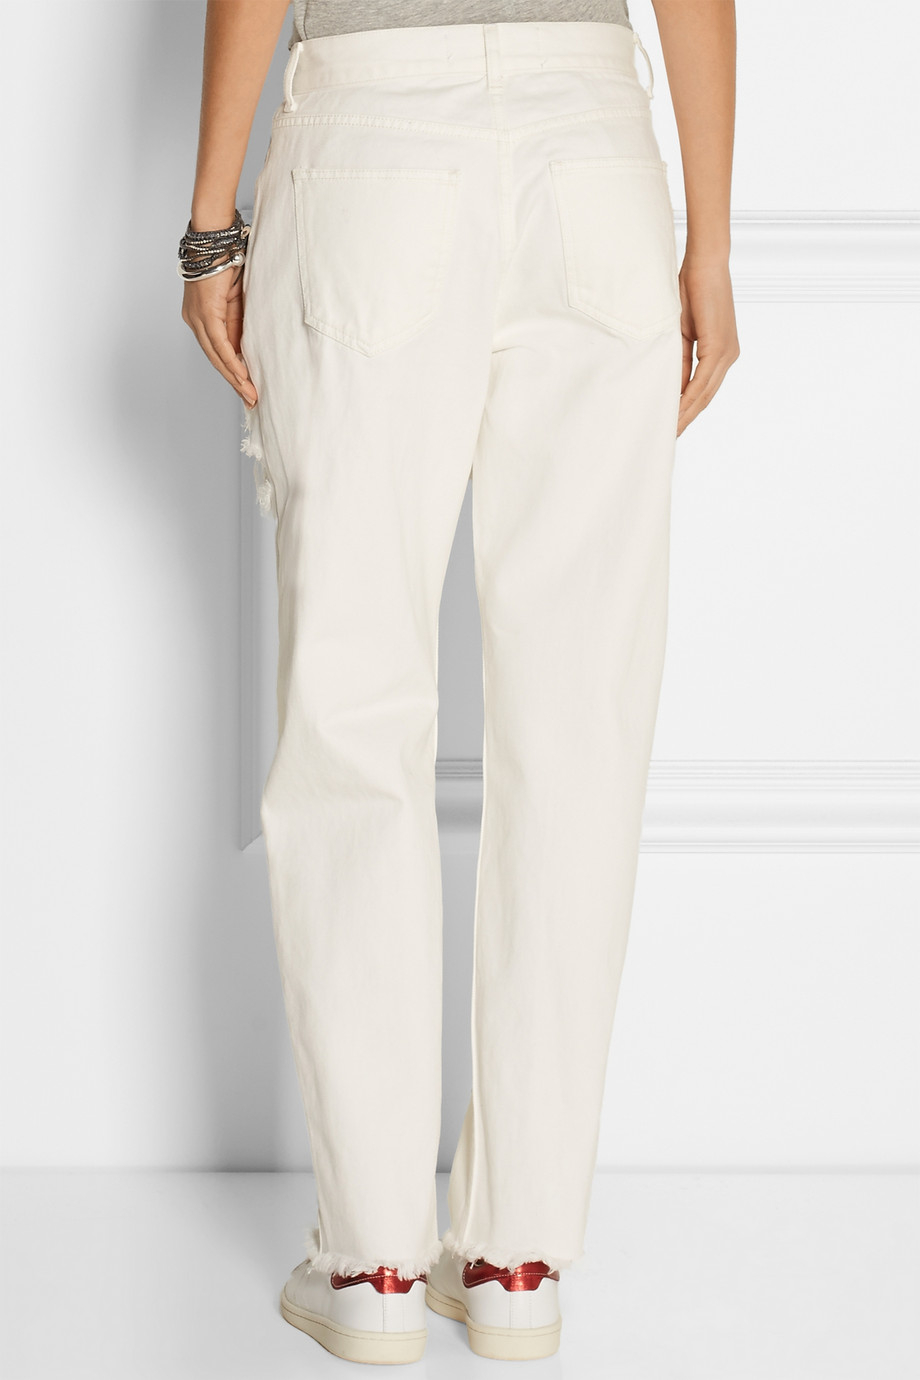 Topshop Distressed High-Rise Boyfriend Jeans in White | Lyst